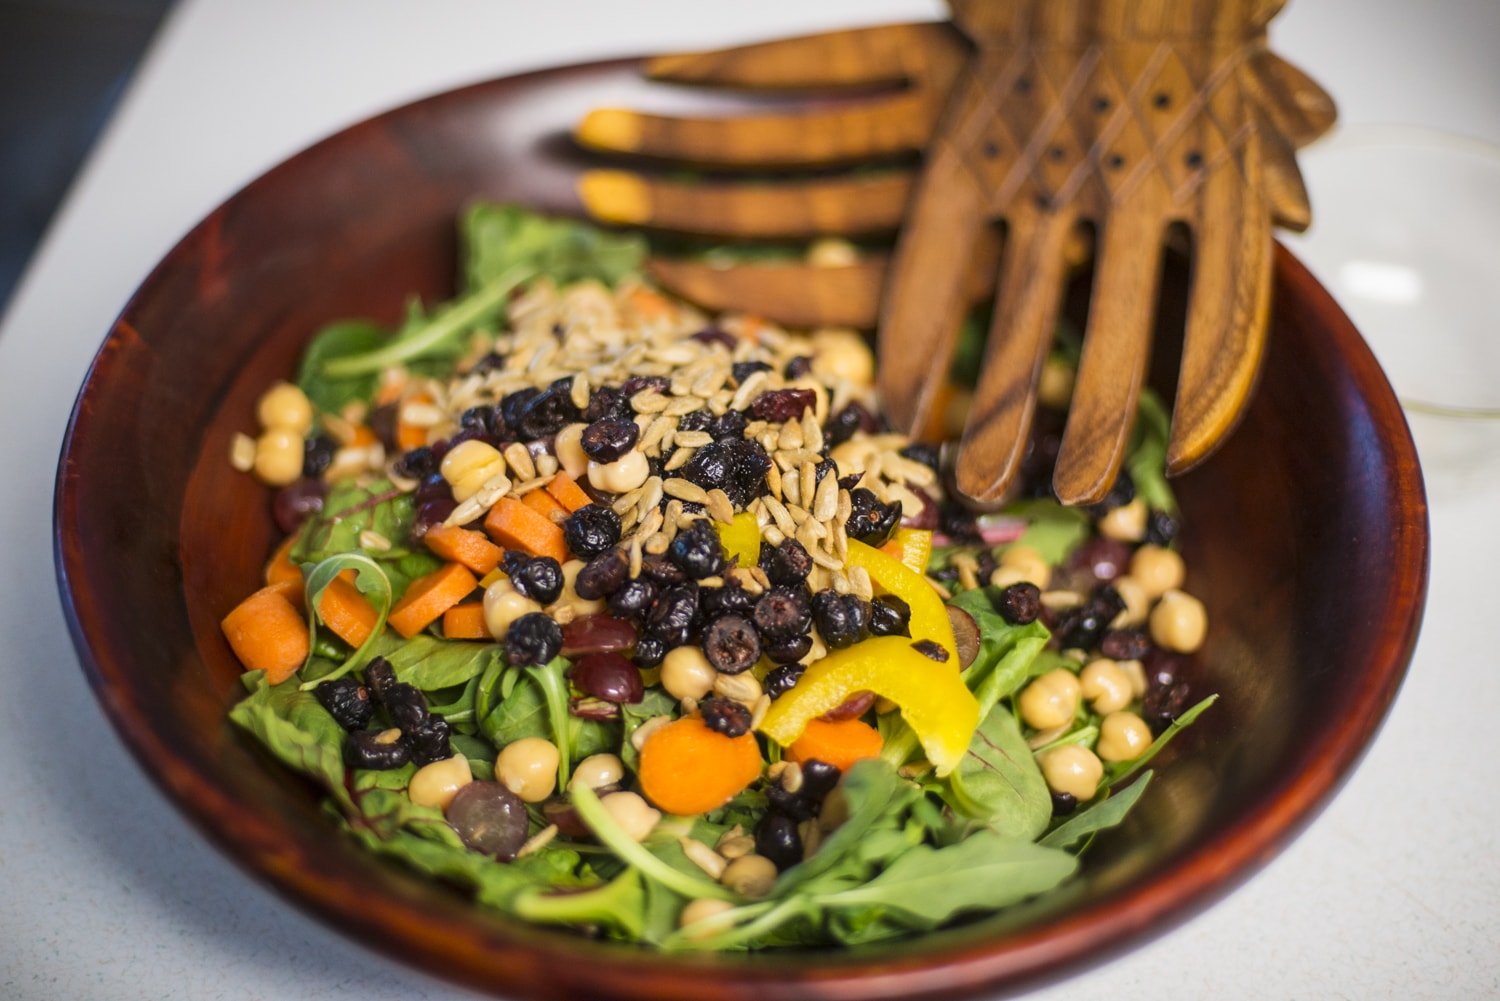 Crunchy Green Salad with Agave Nectar Dressing